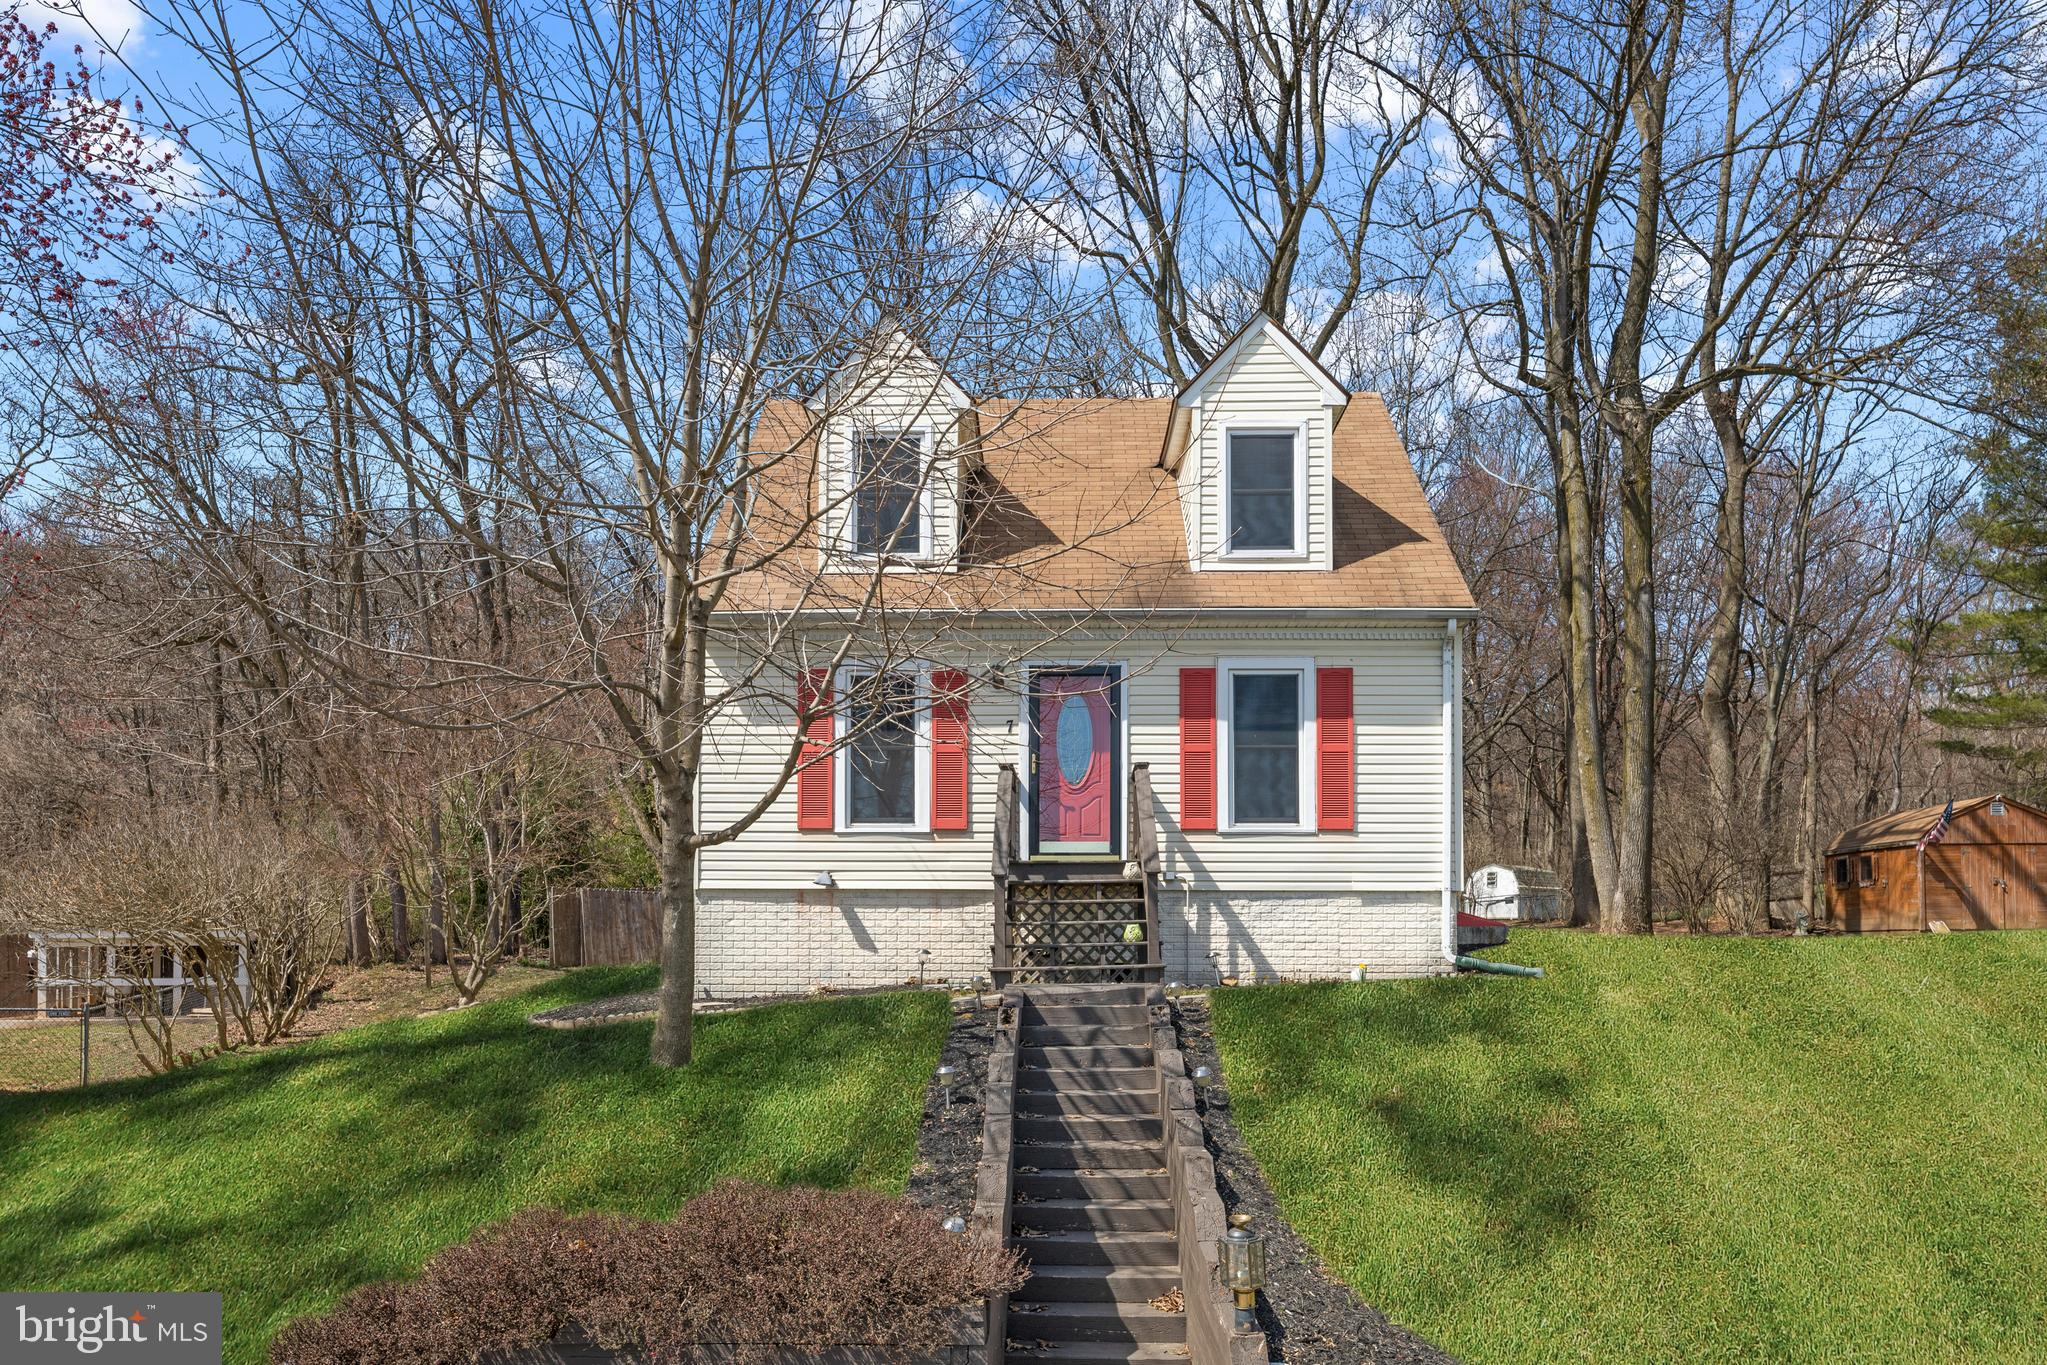 7 Tannery Ct, Thurmont, MD, 21788